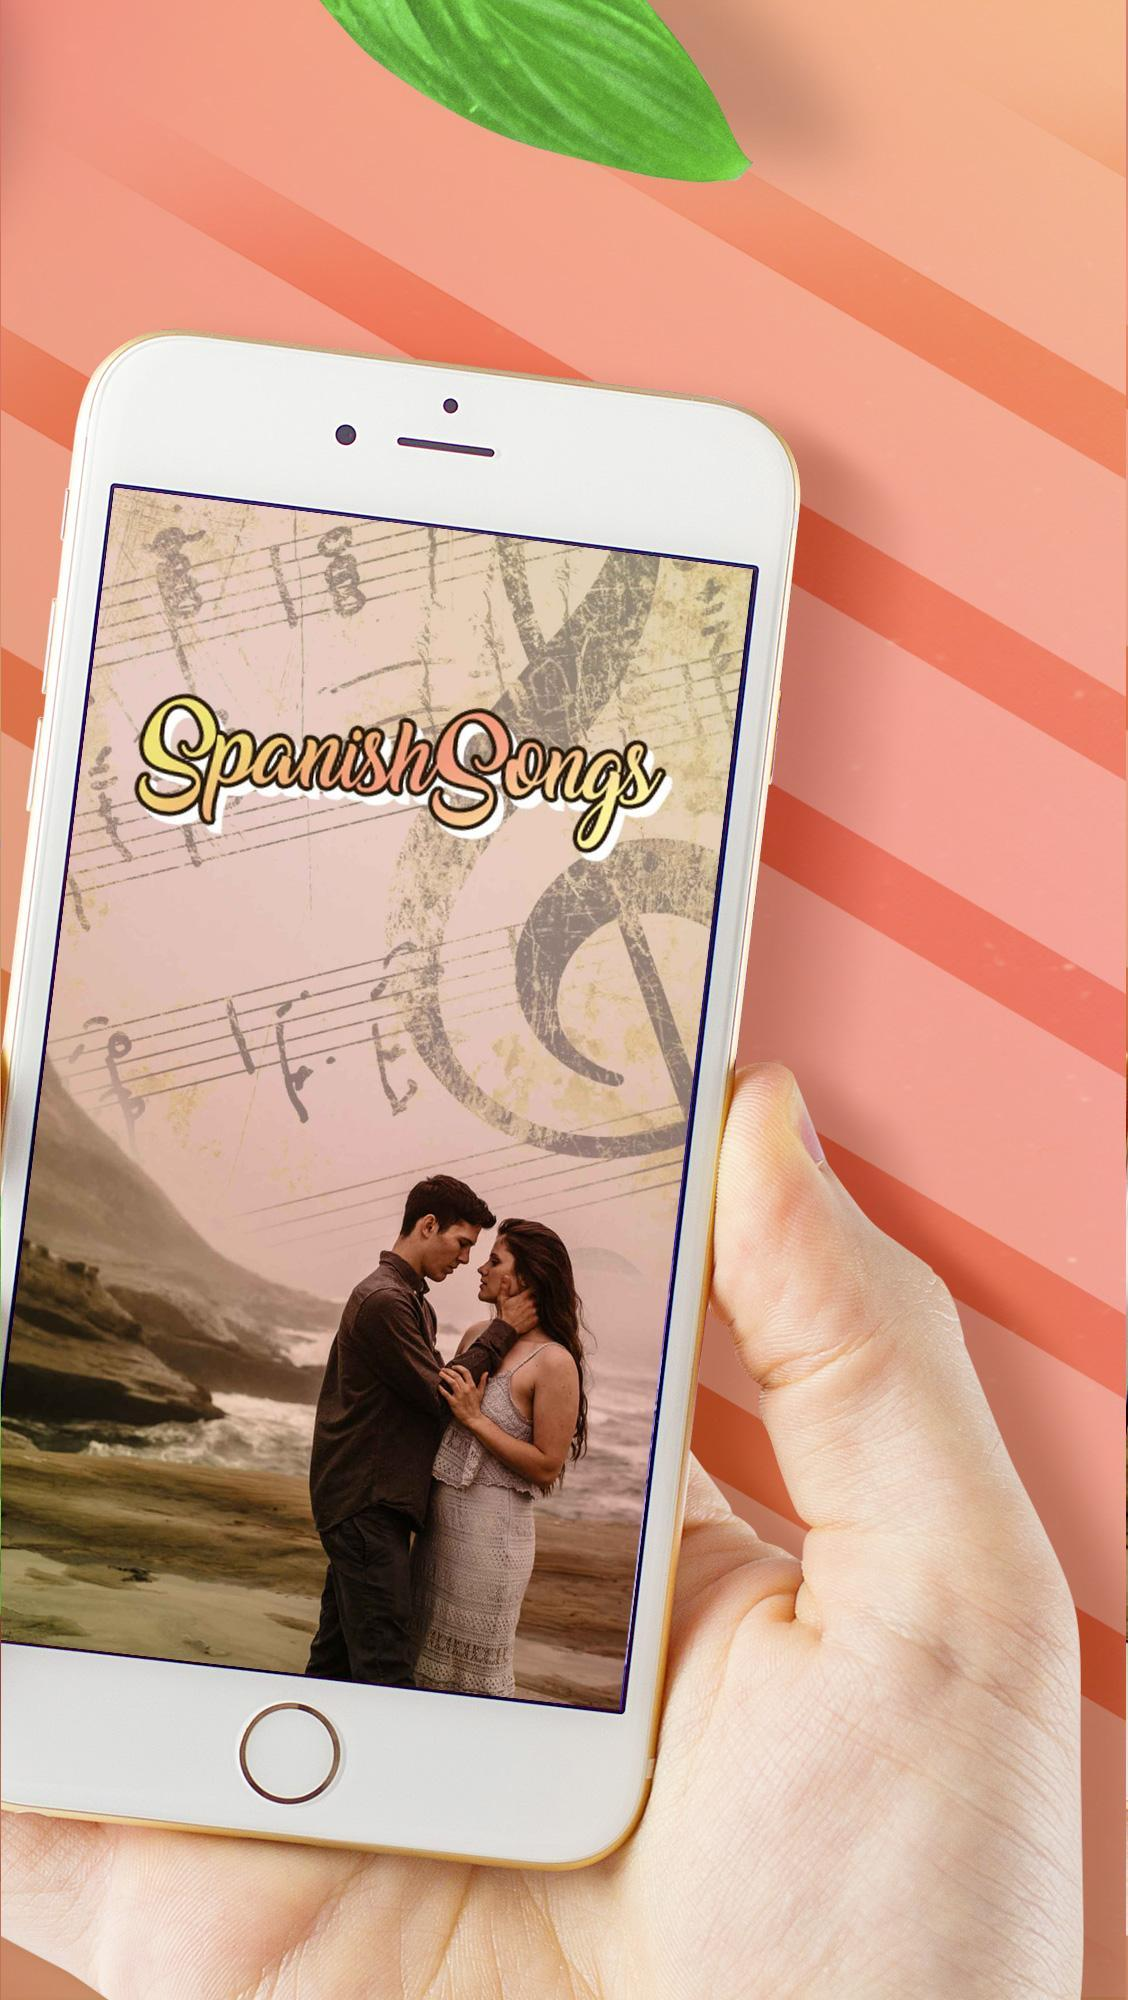 Top Spanish Music 2019 - Free Song for Android - APK Download